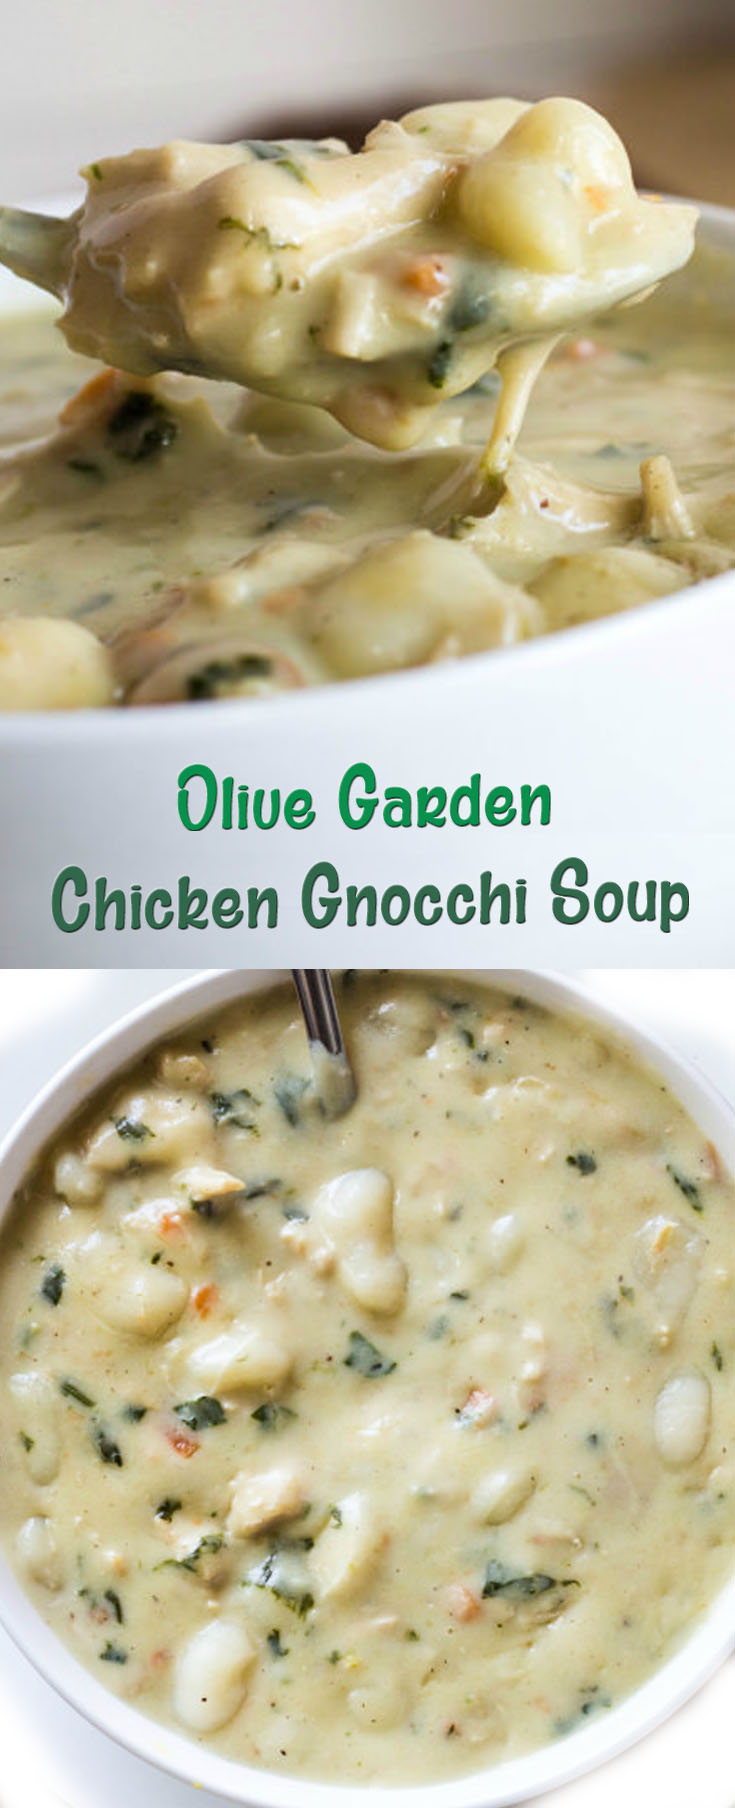 problems with this recipe click here - Olive Garden Gnocchi Soup